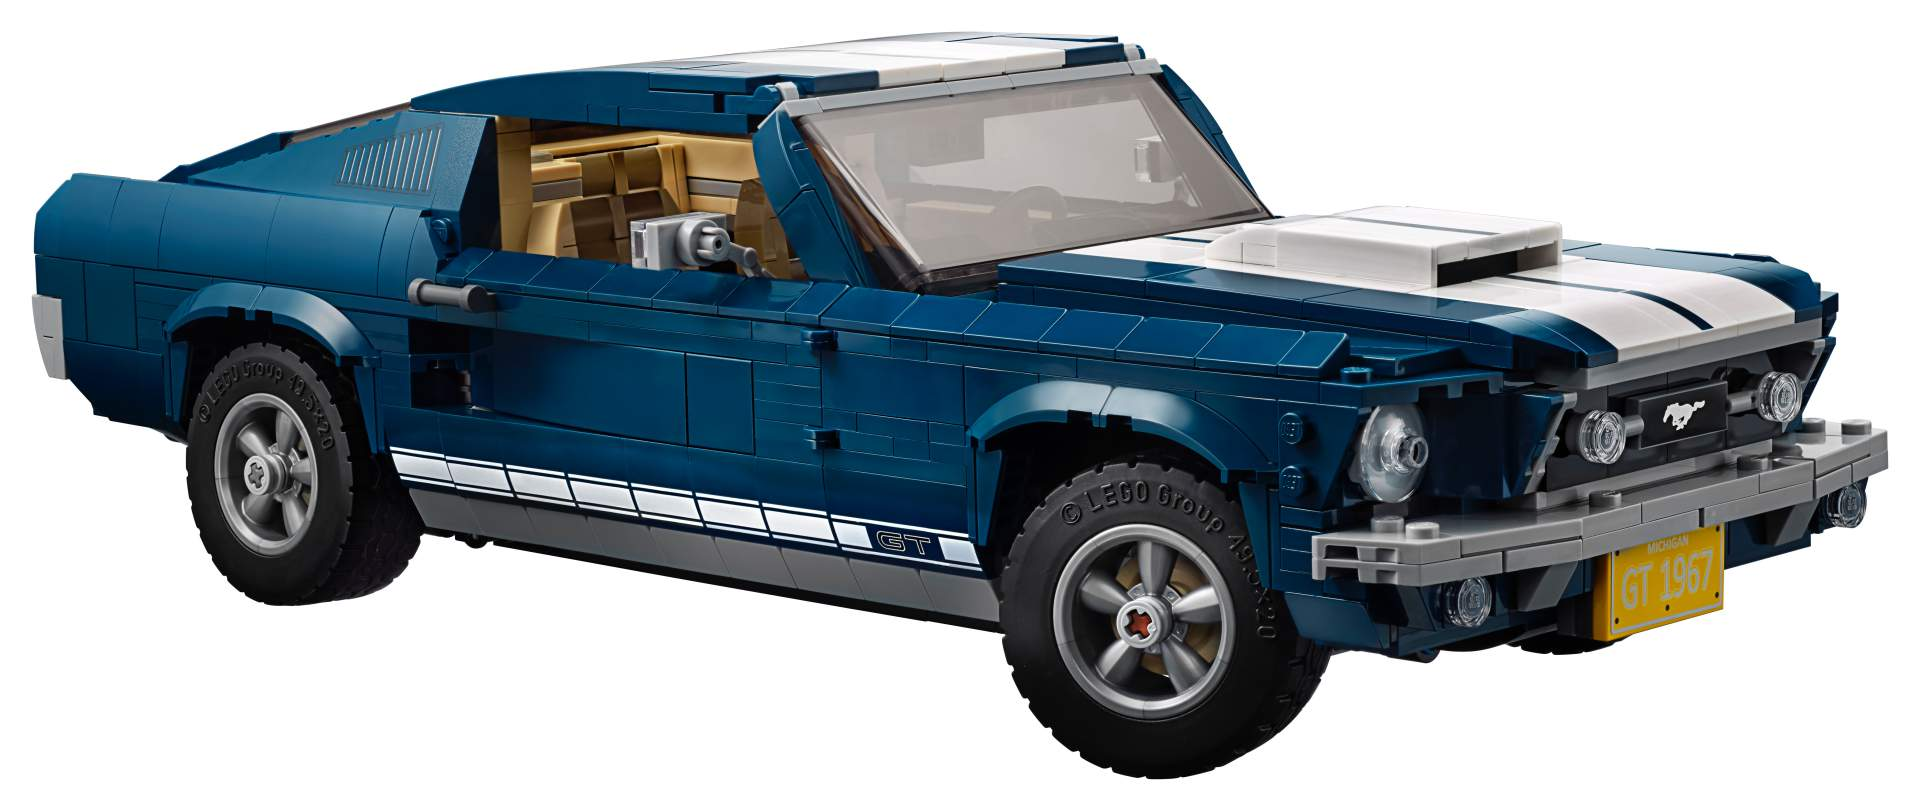 Ford Mustang GT 1967 Lego Creator Set (2)